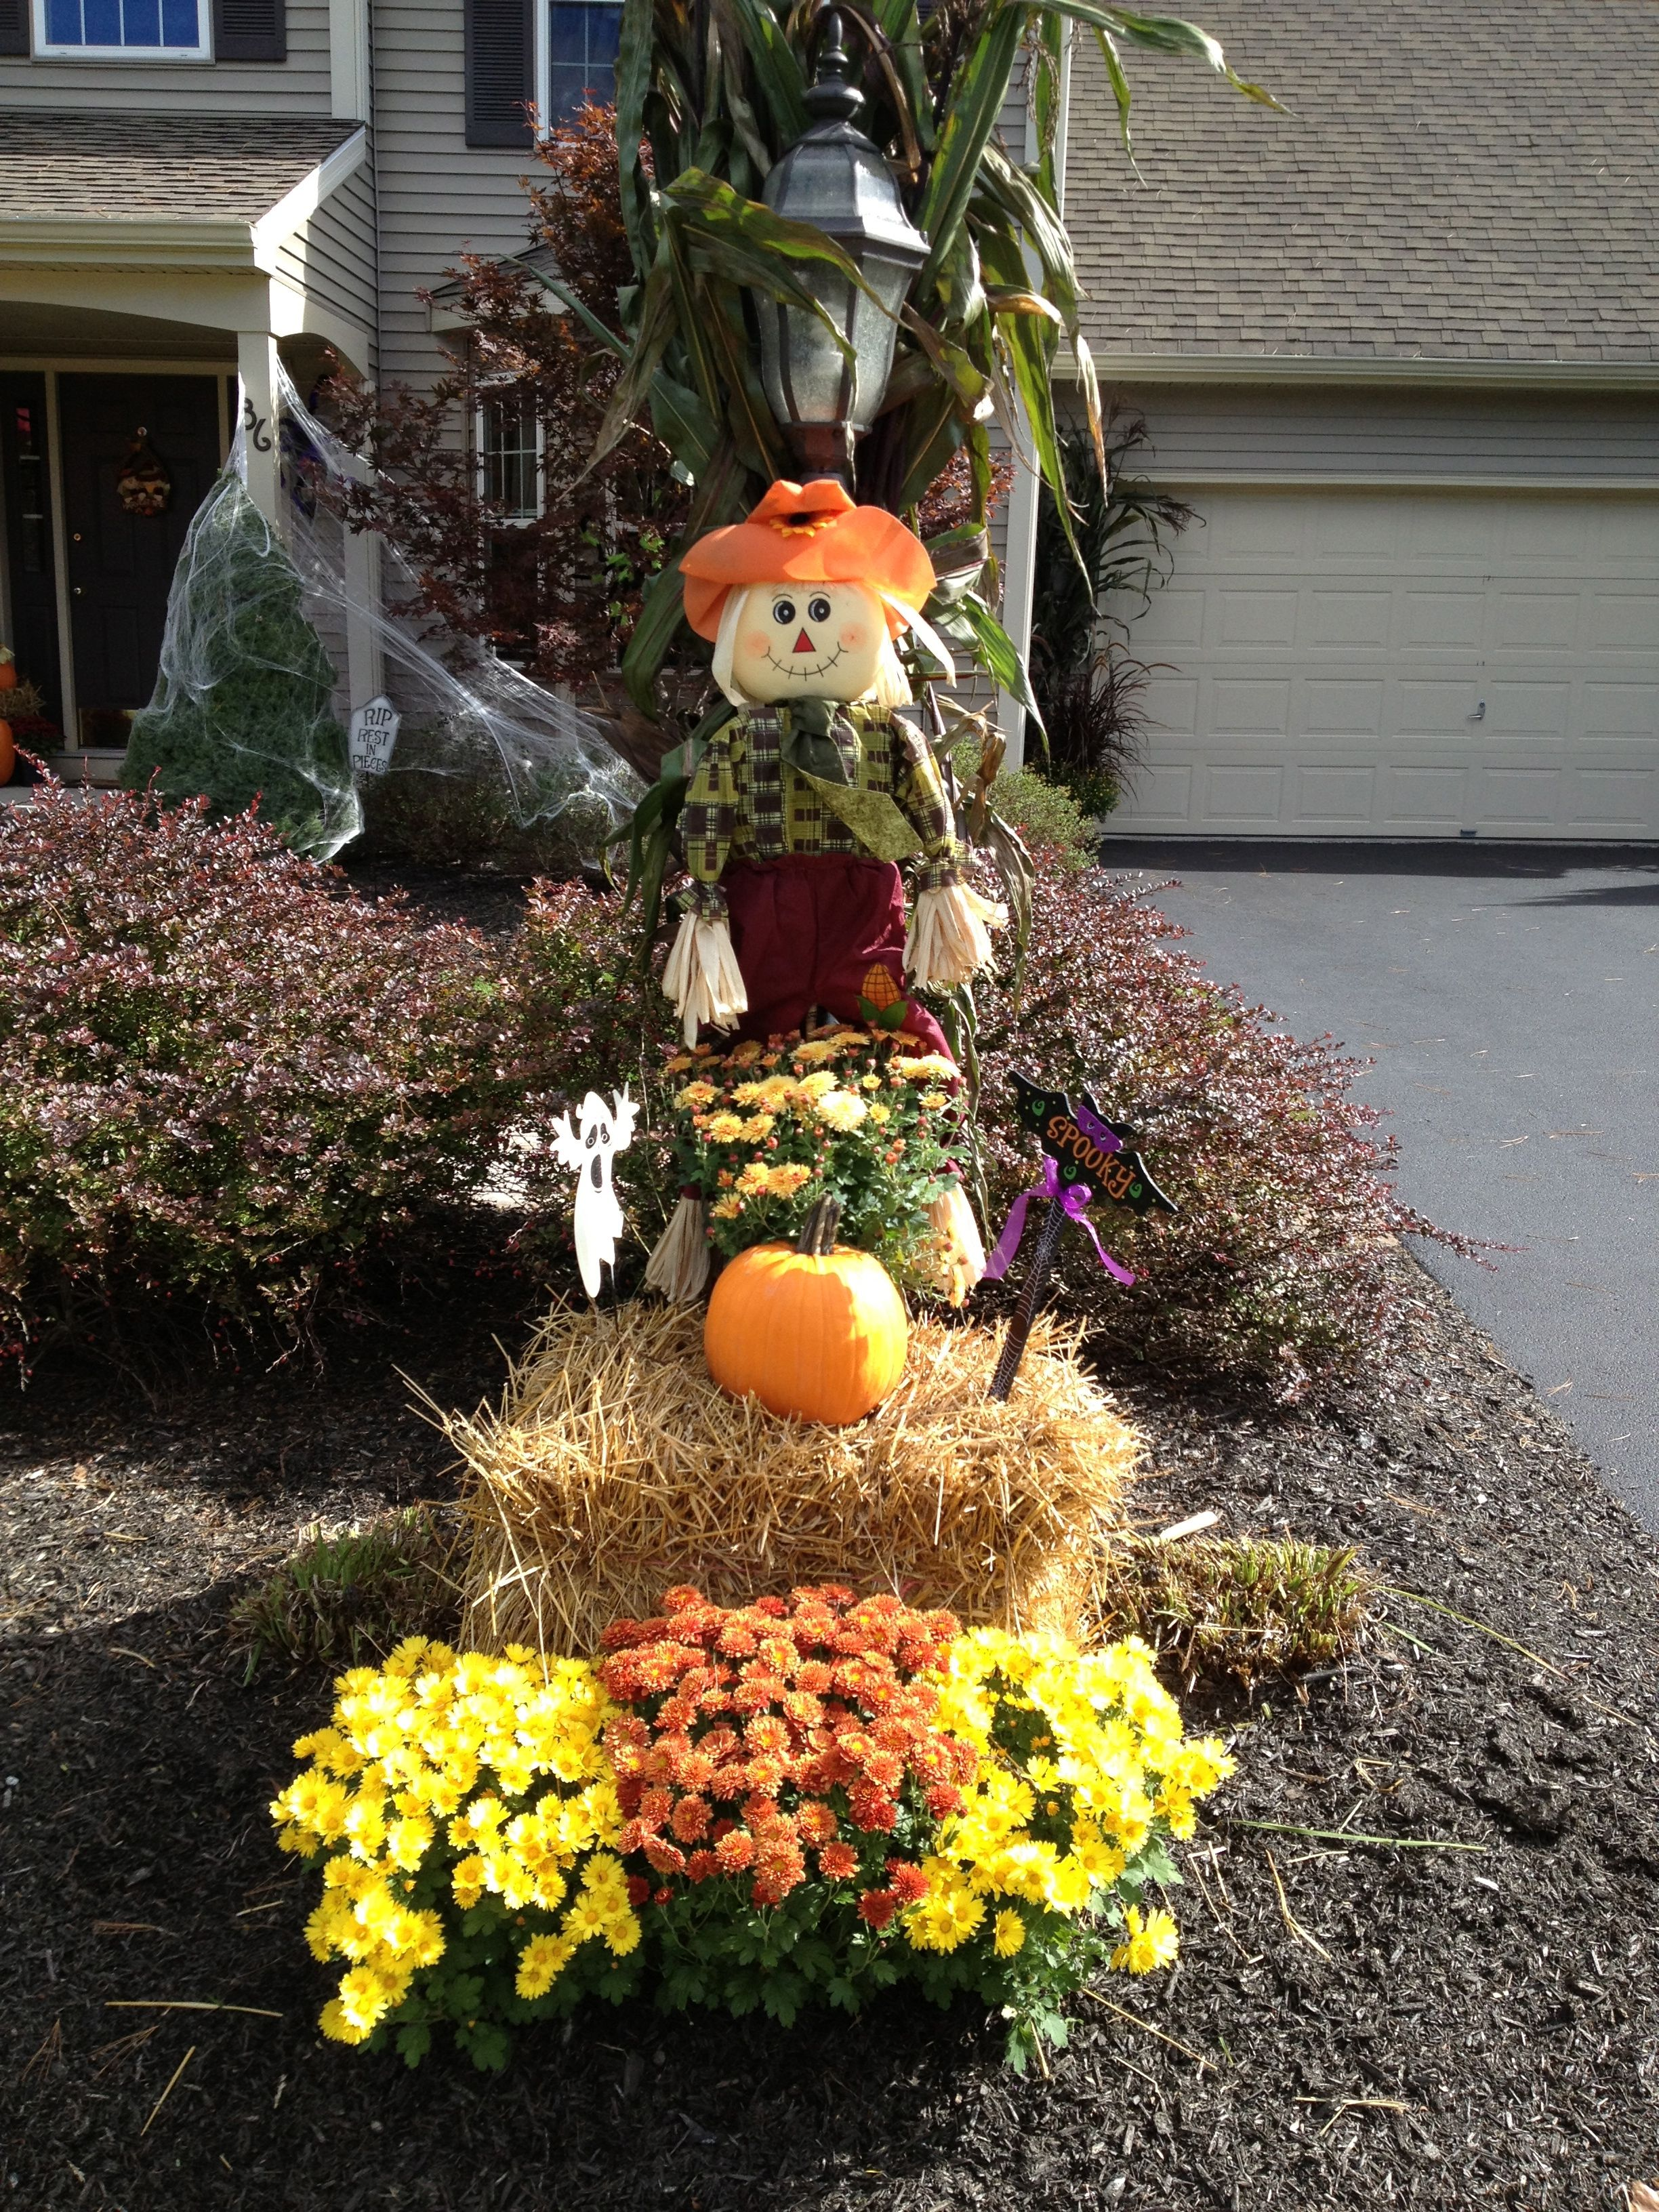 fall harvest decorations outdoors fall harvest outdoor display  with images  harvest decorations  fall harvest outdoor display  with